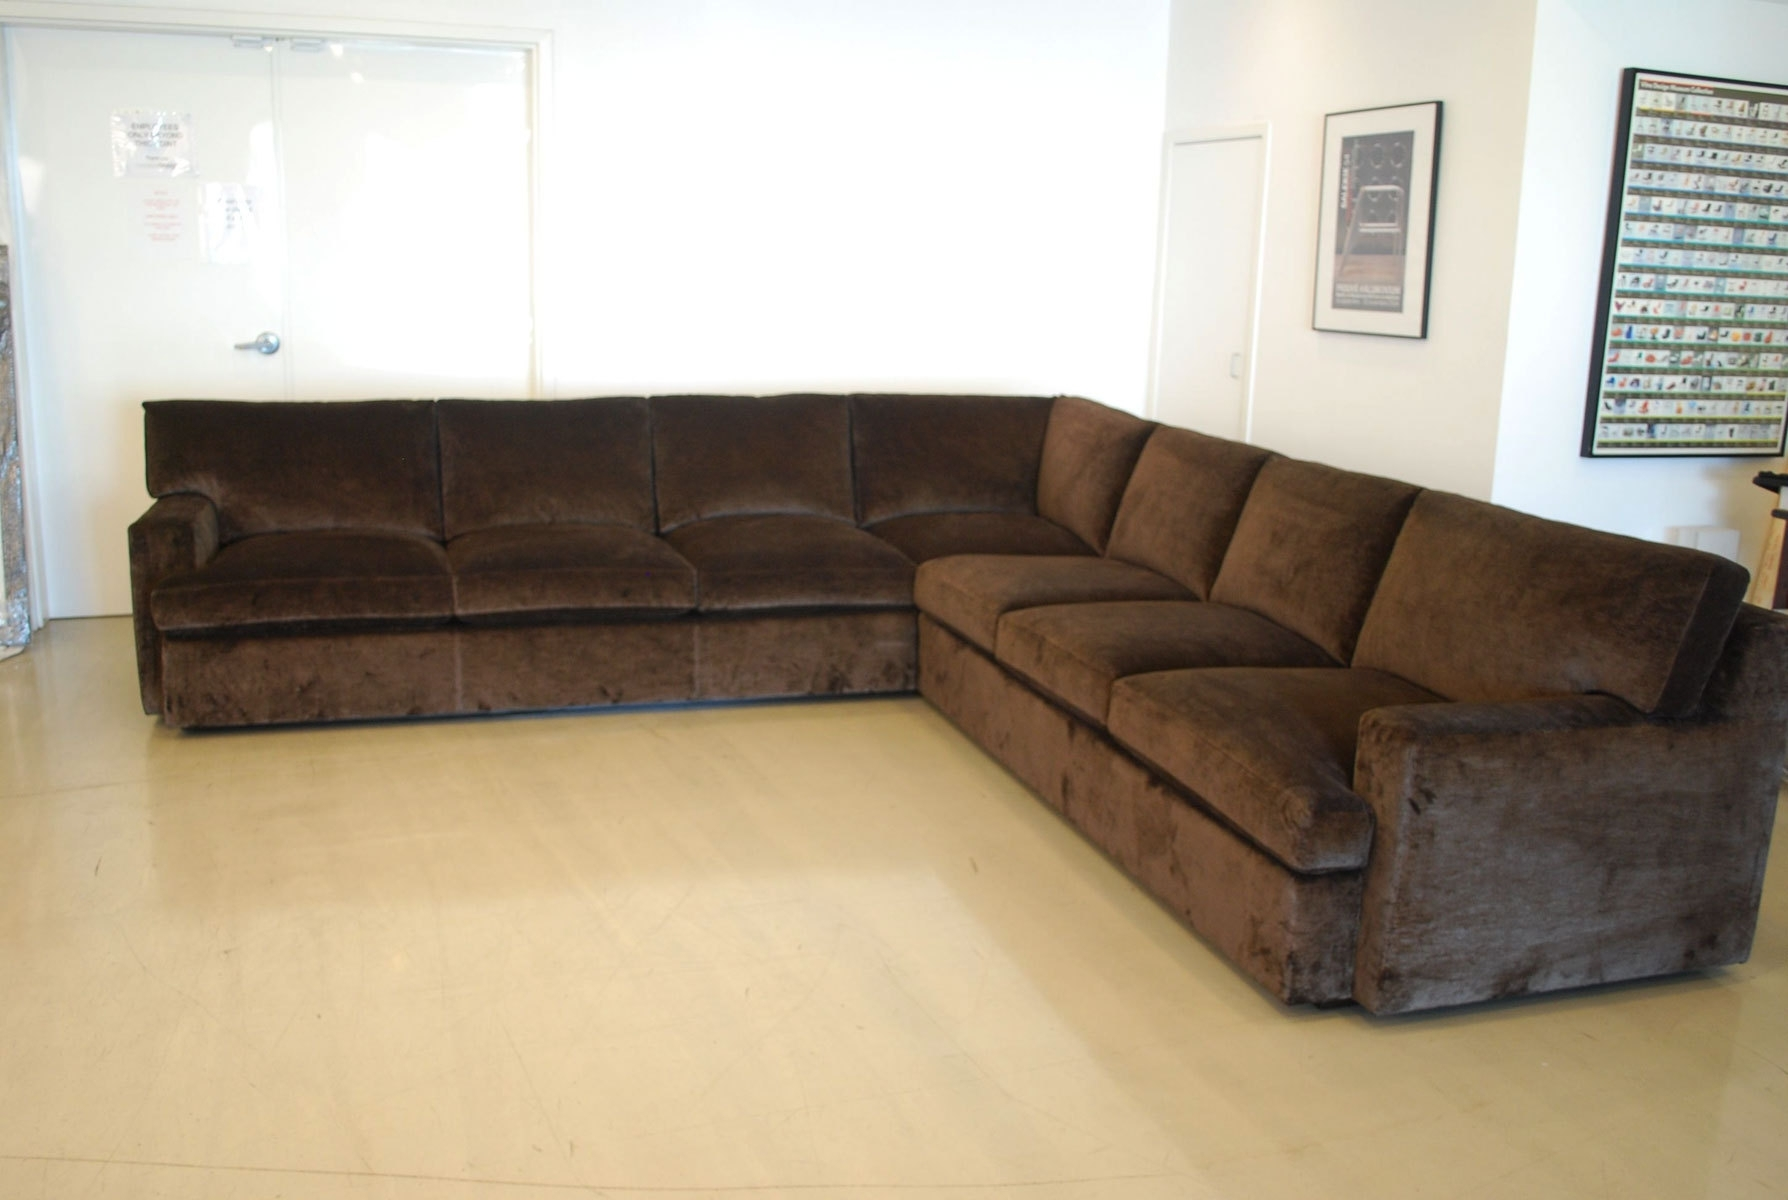 Amusing Large L Shaped Sectional Sofas 99 On The Brick Sofa Bed regarding The Brick Sectional Sofas (Image 1 of 10)